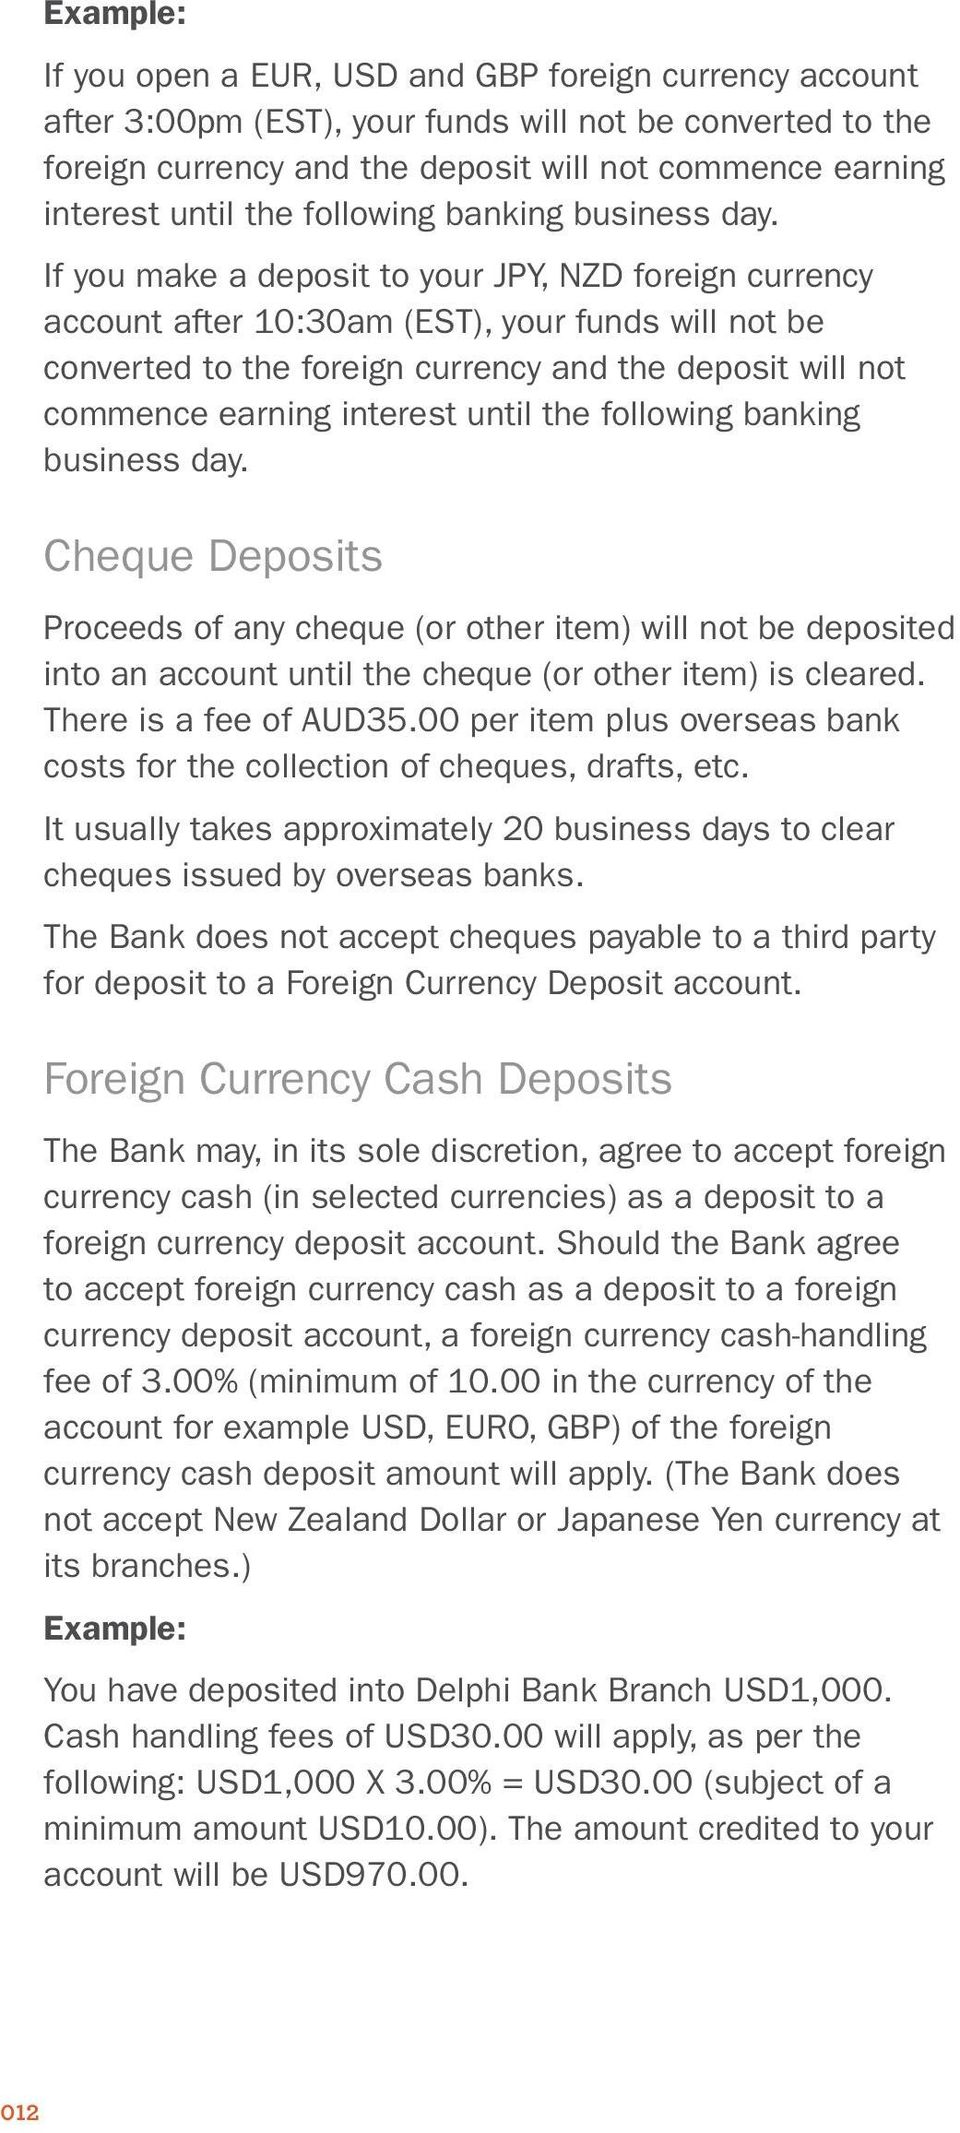 If you make a deposit to your JPY, NZD foreign currency account after 10:30am (EST), your funds will not be converted to the foreign currency and the deposit will not commence earning interest until